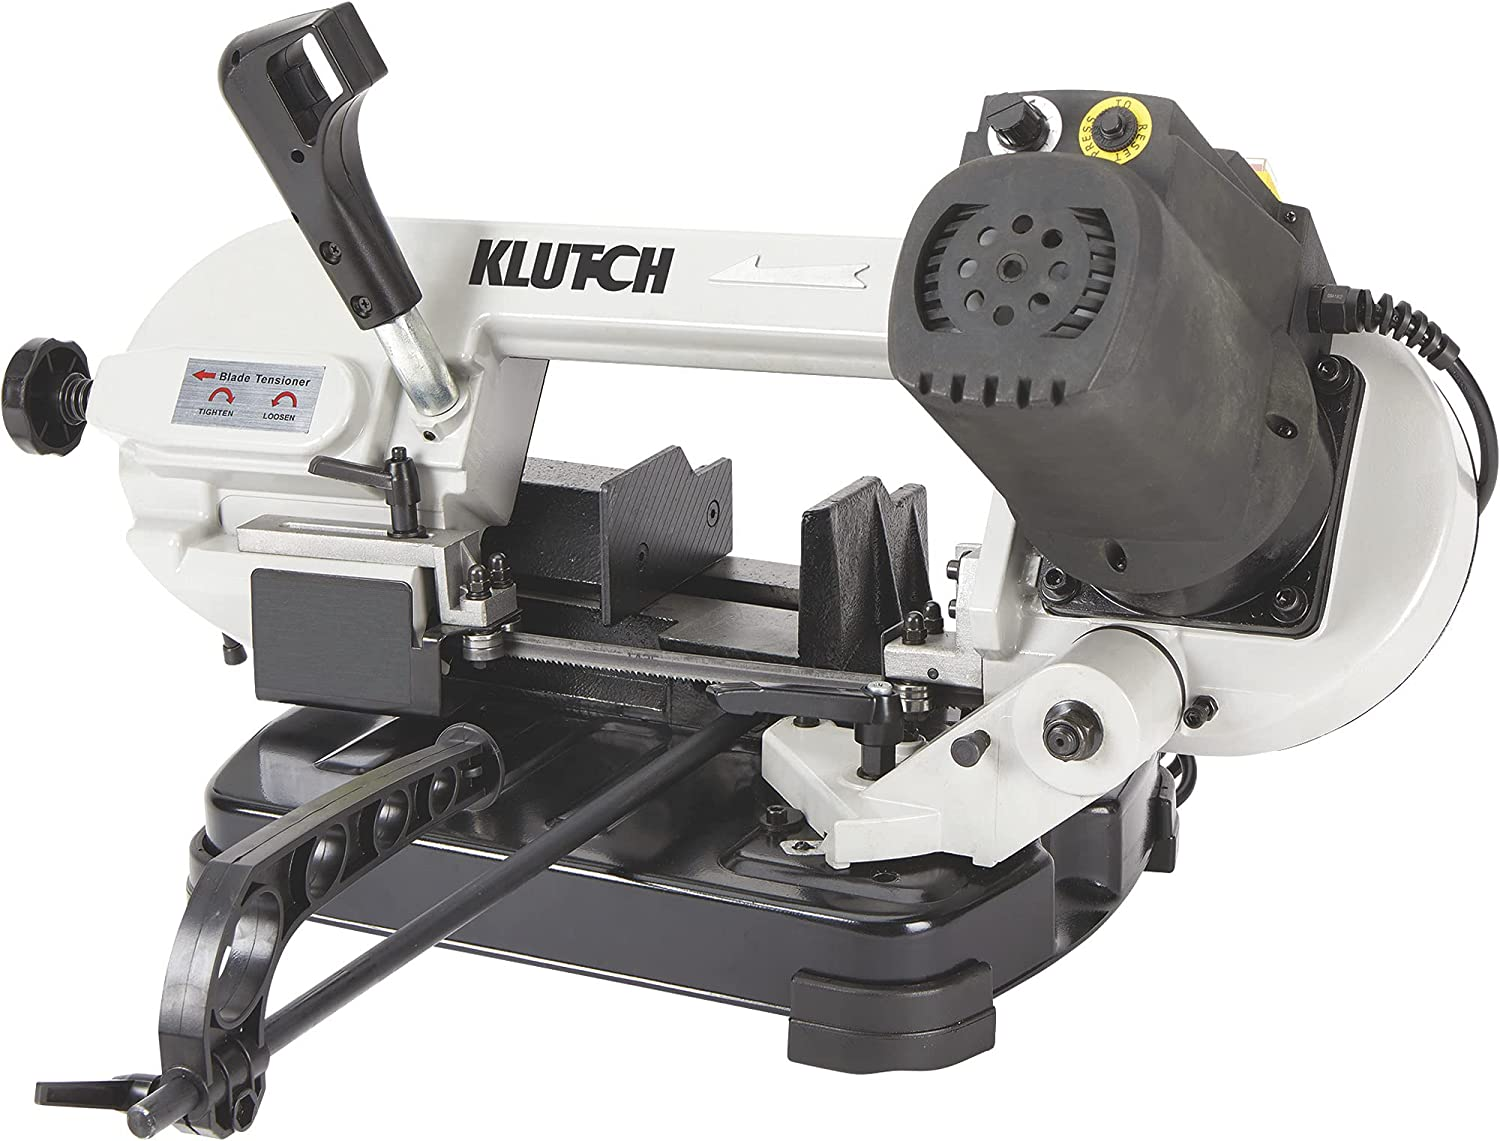 Klutch Benchtop Metal Cutting Band Saw - 5in. x 4 7/8in, 400 Wat